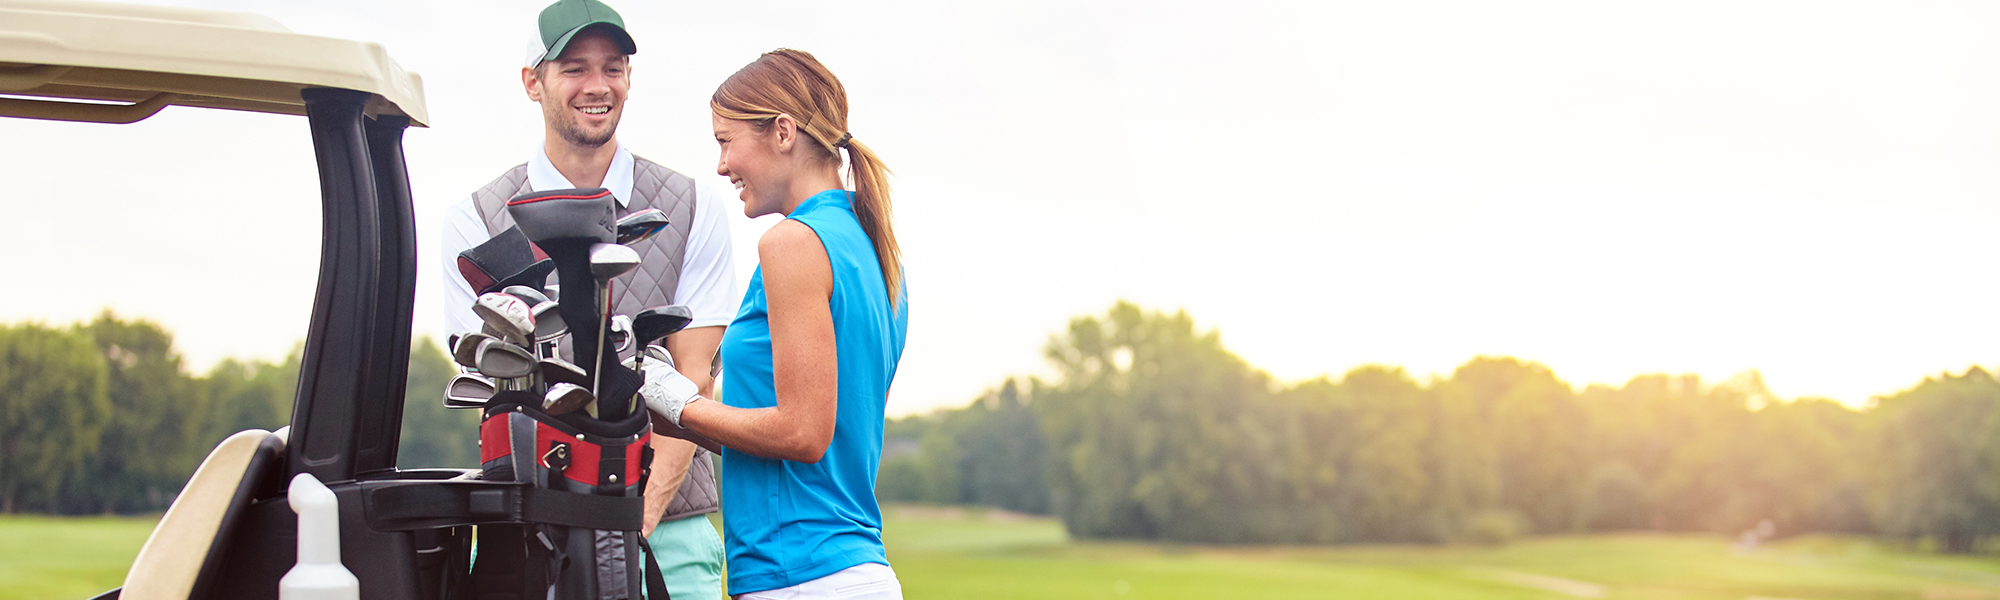 Man and Woman Talking Together on the Golf Course